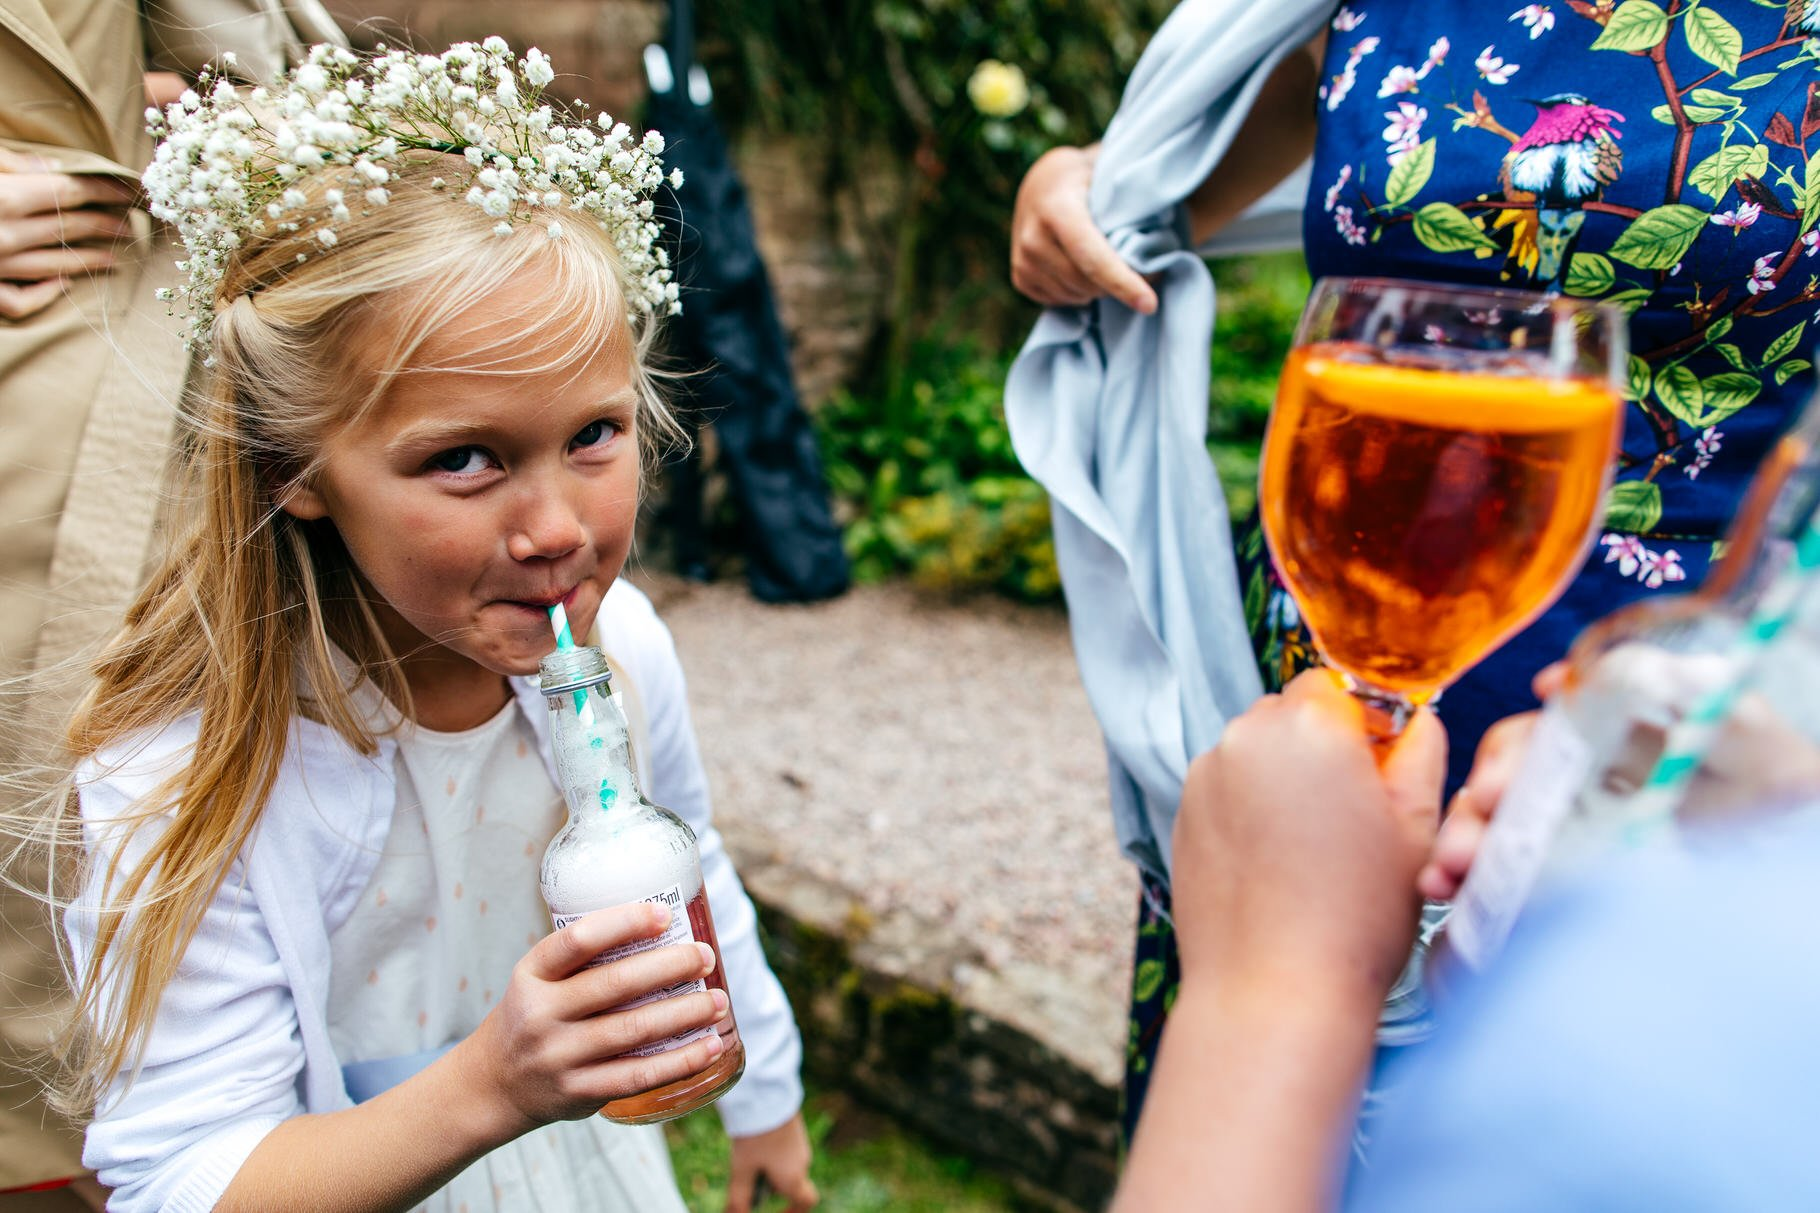 girl sipping drink at summer garden wedding